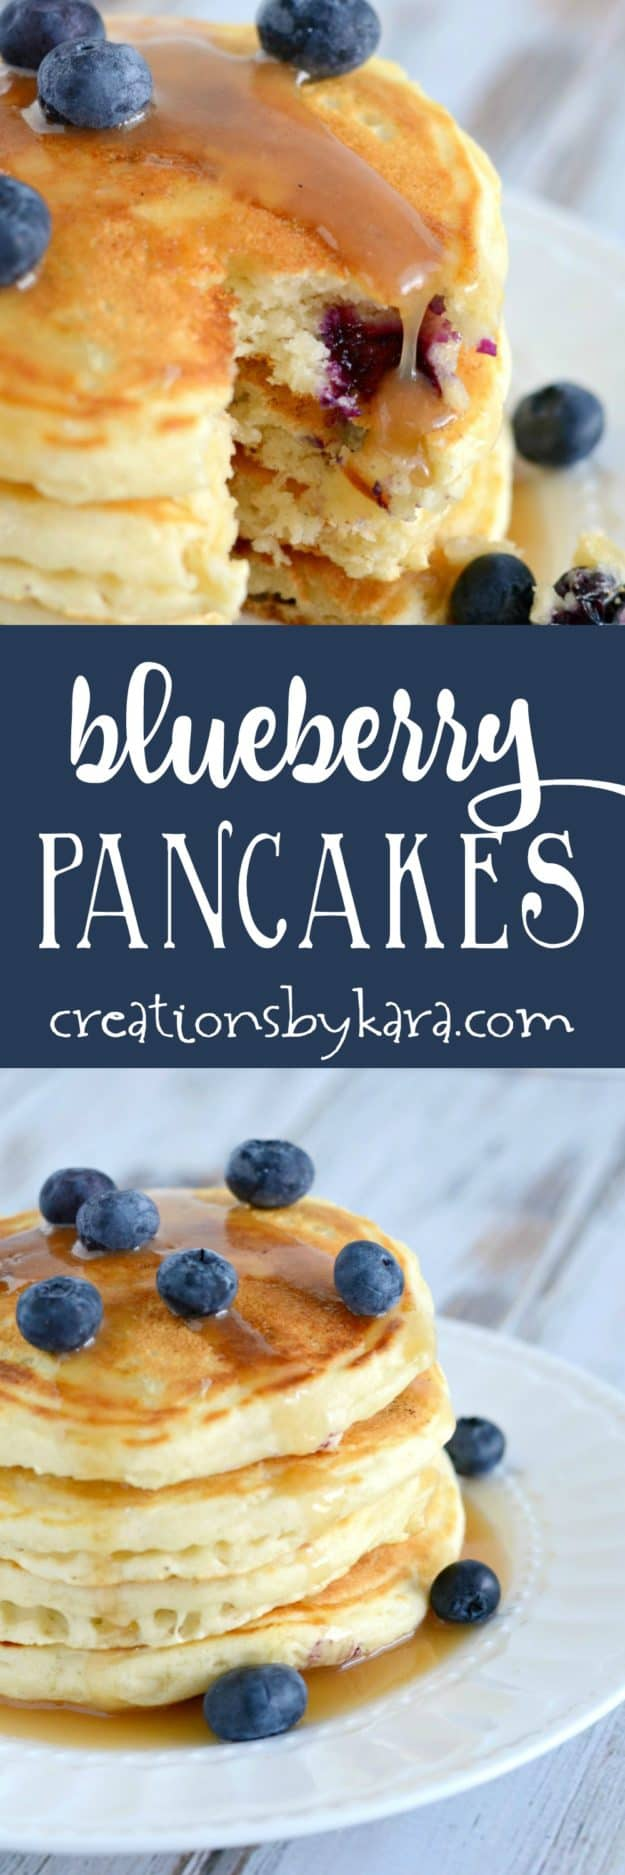 Blueberry Pancakes recipe -these made from scratch blueberry pancakes are simple, but delicious. A perfect blueberry pancake recipe!